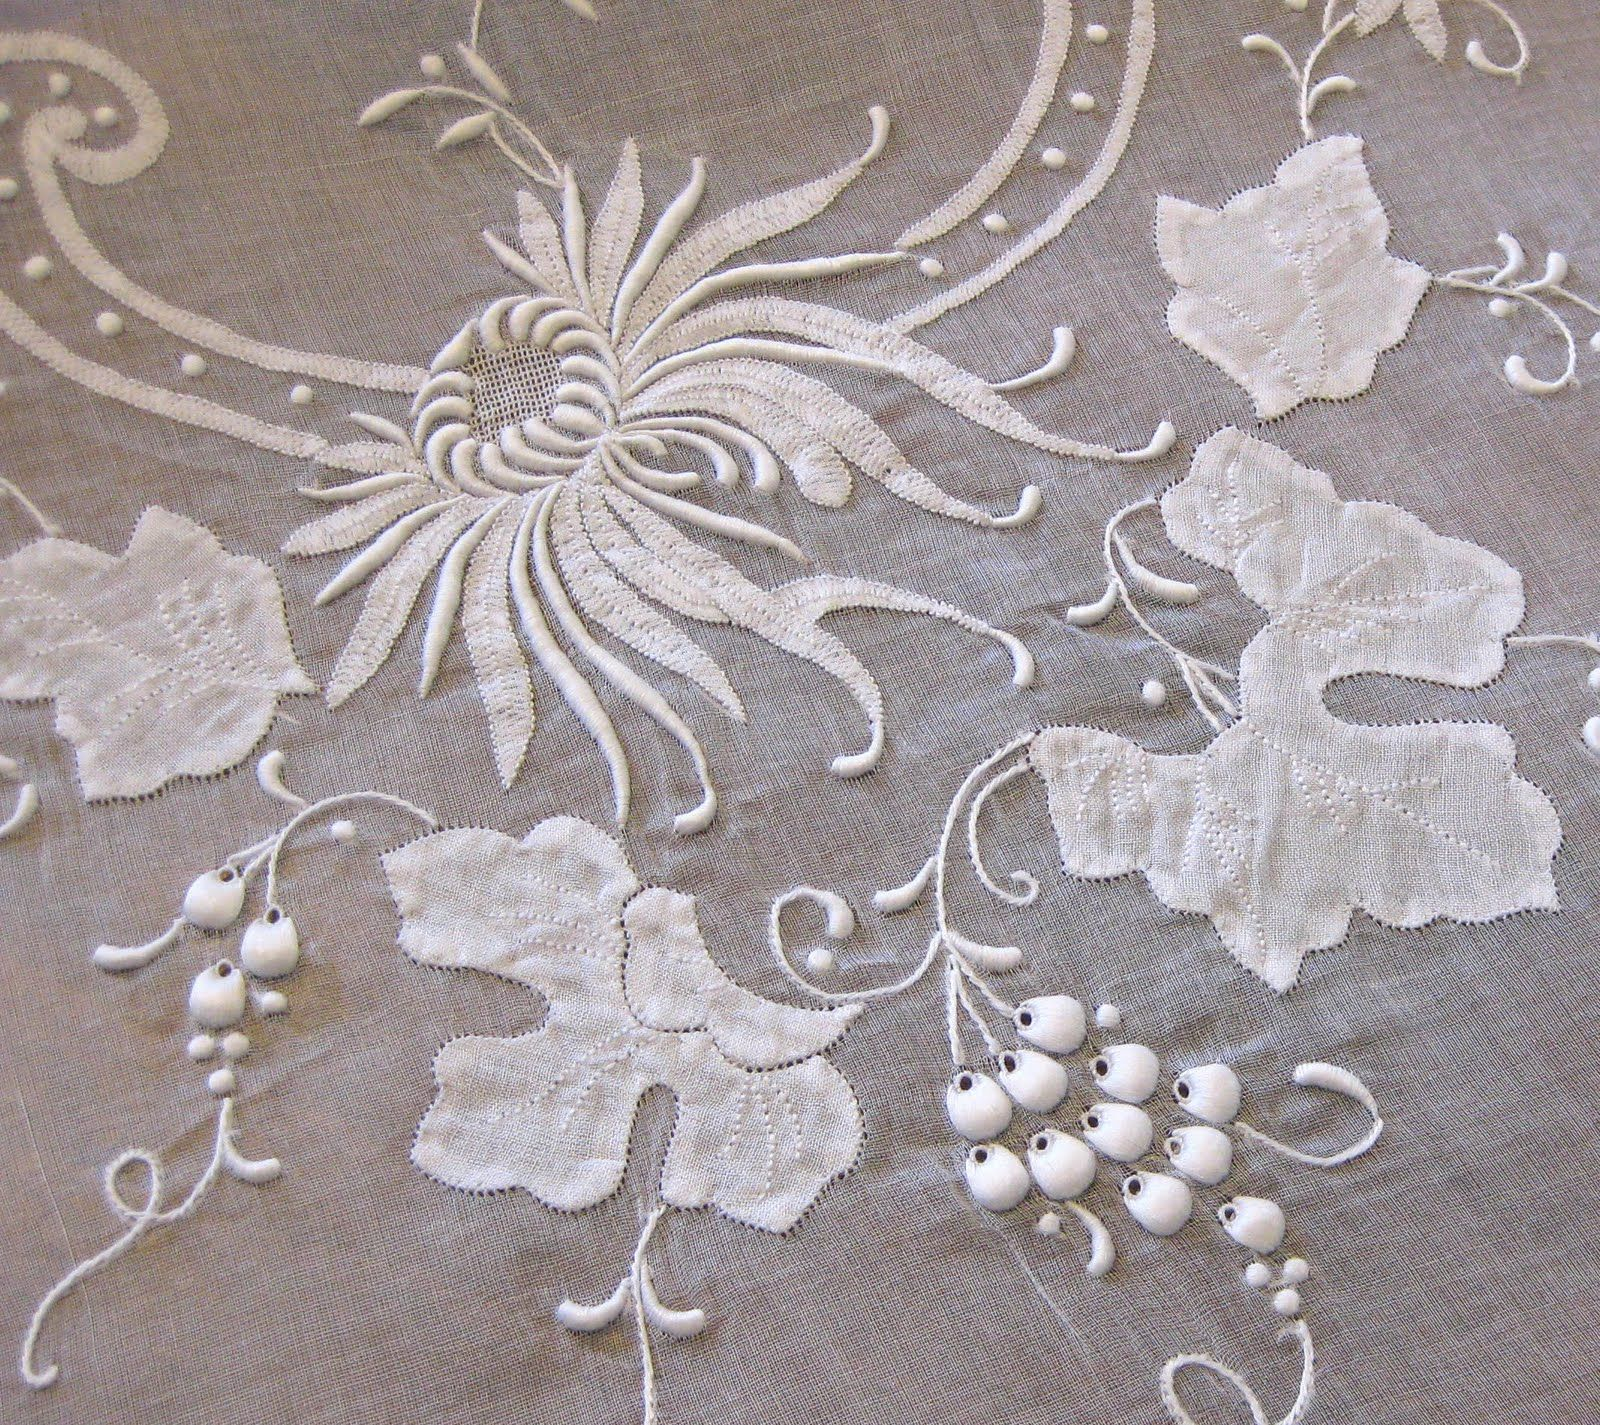 madeira table linens linge ancien blanc pinterest broderie linge et draps vintage. Black Bedroom Furniture Sets. Home Design Ideas